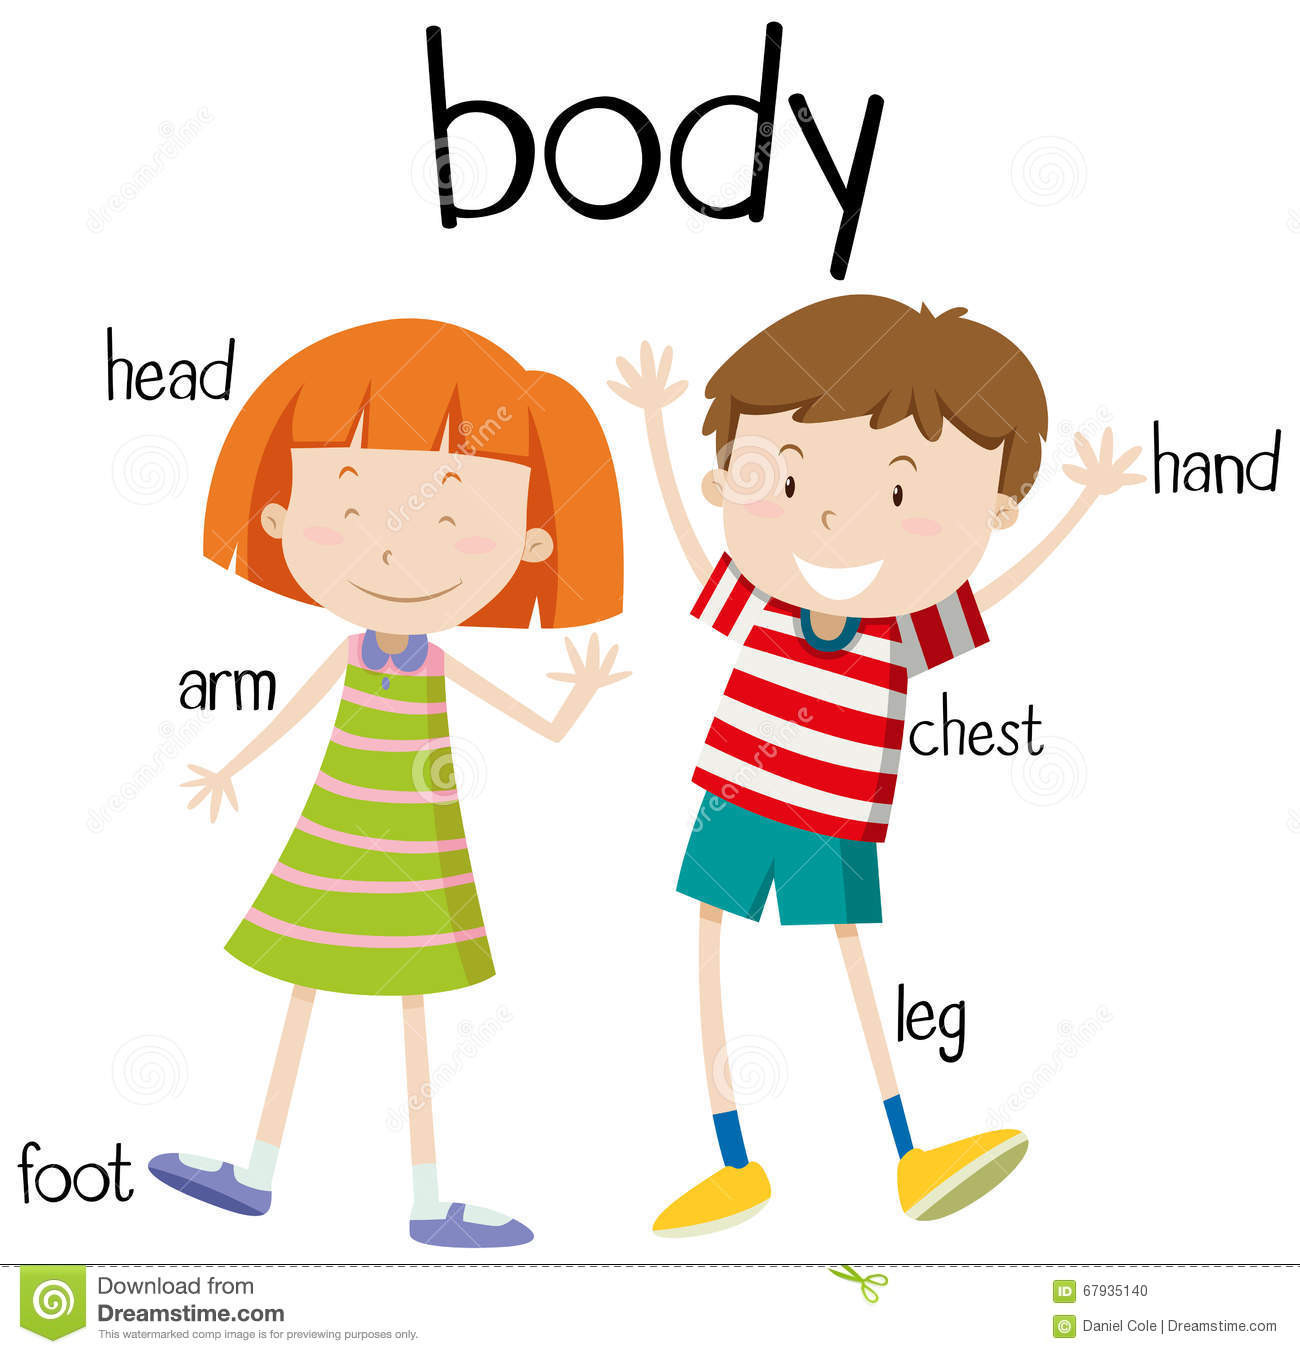 Body clipart my body, Picture #284901 body clipart my body.